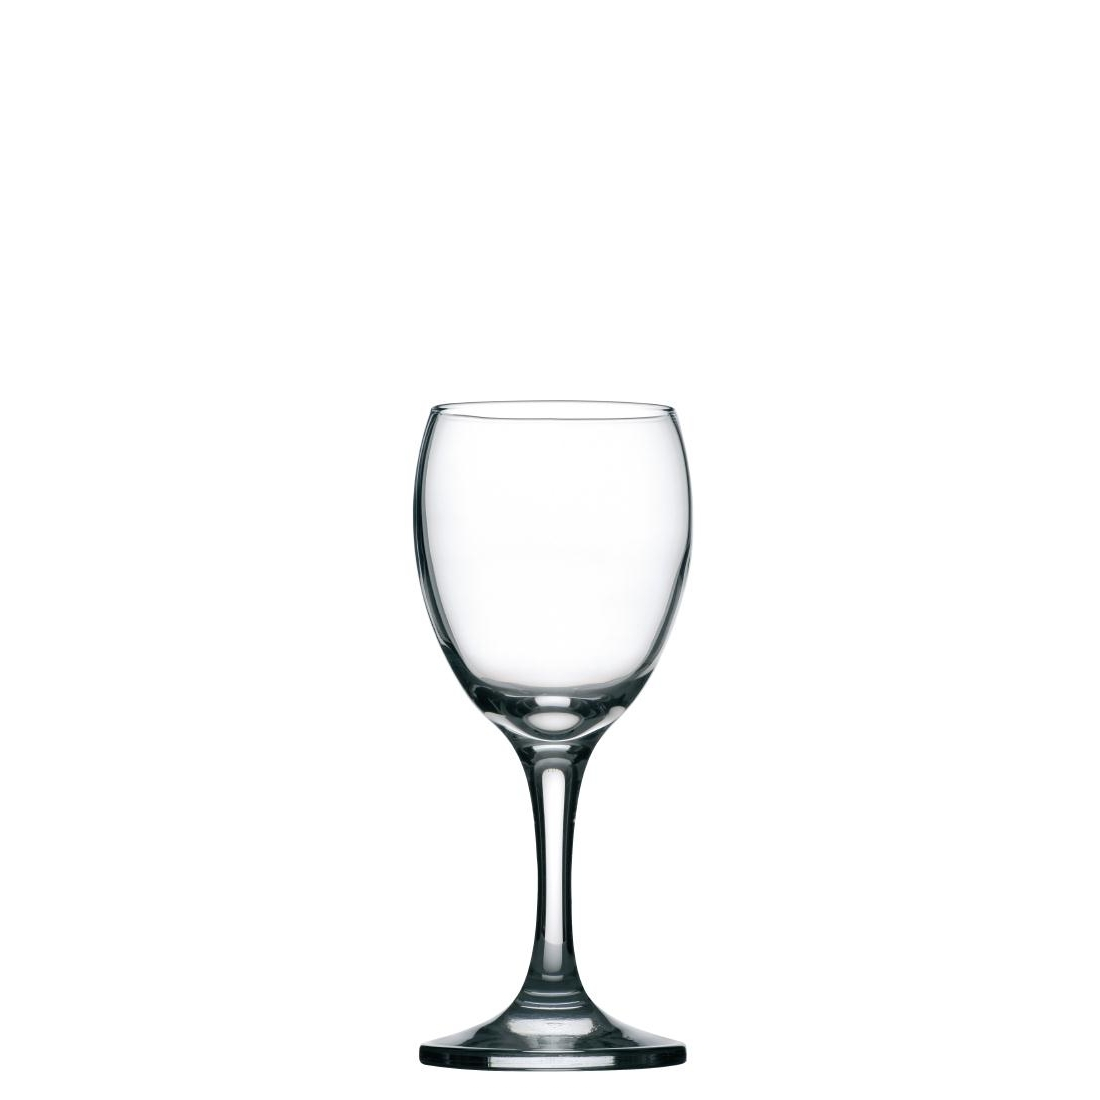 Utopia Imperial White Wine Glasses 200ml CE Marked at 125ml